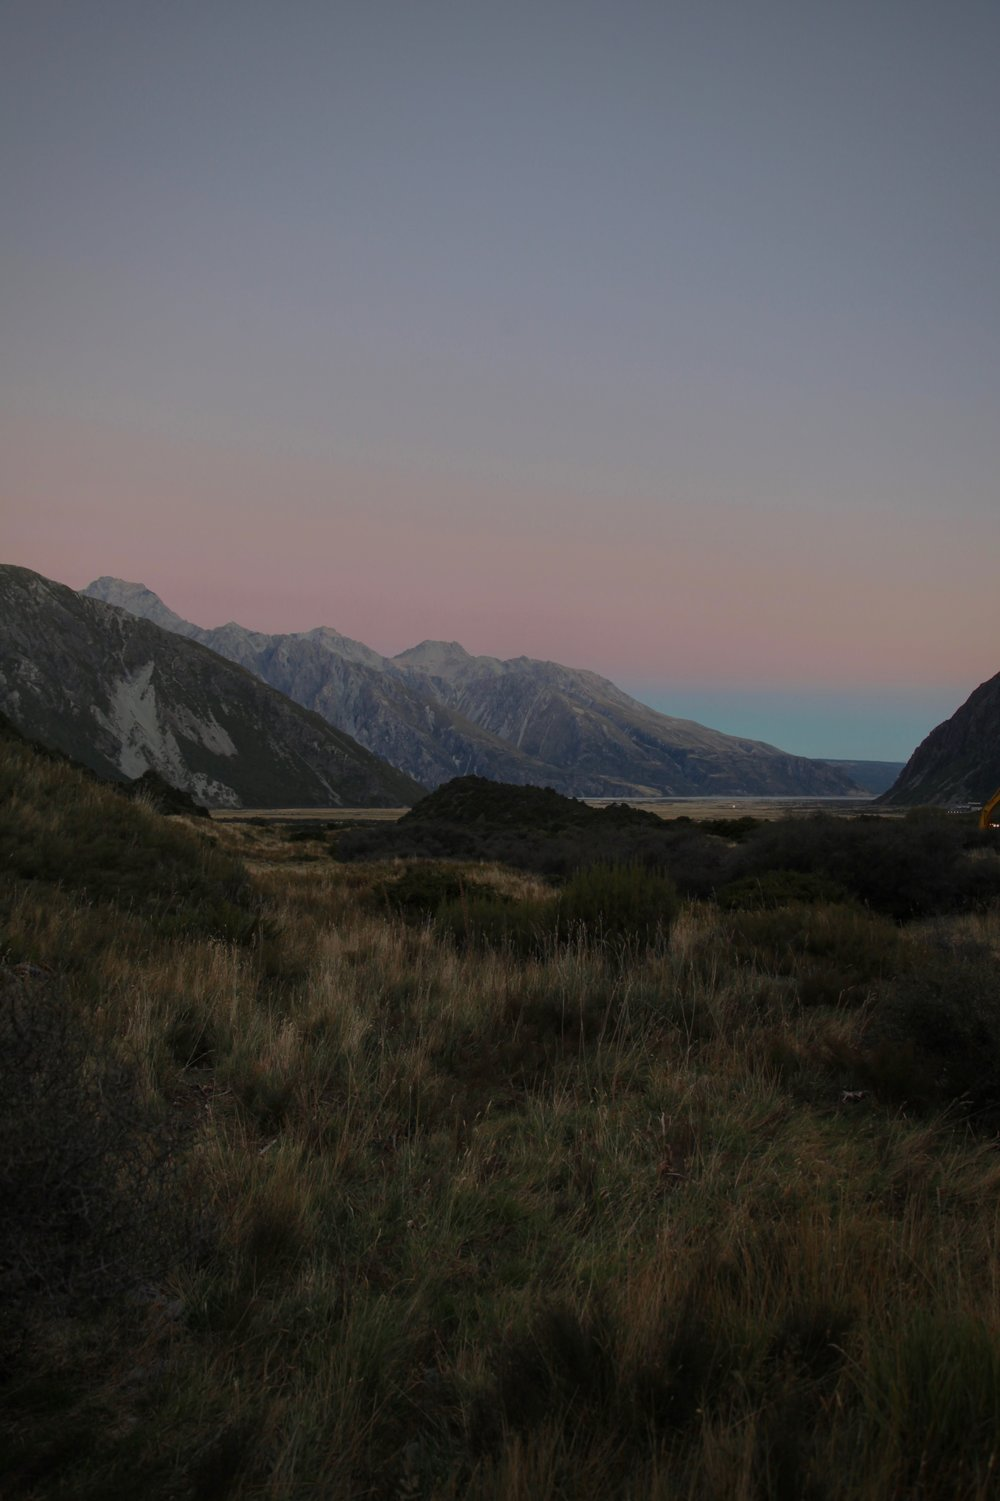 A pink sunset in Aoraki Mt Cook National Park.